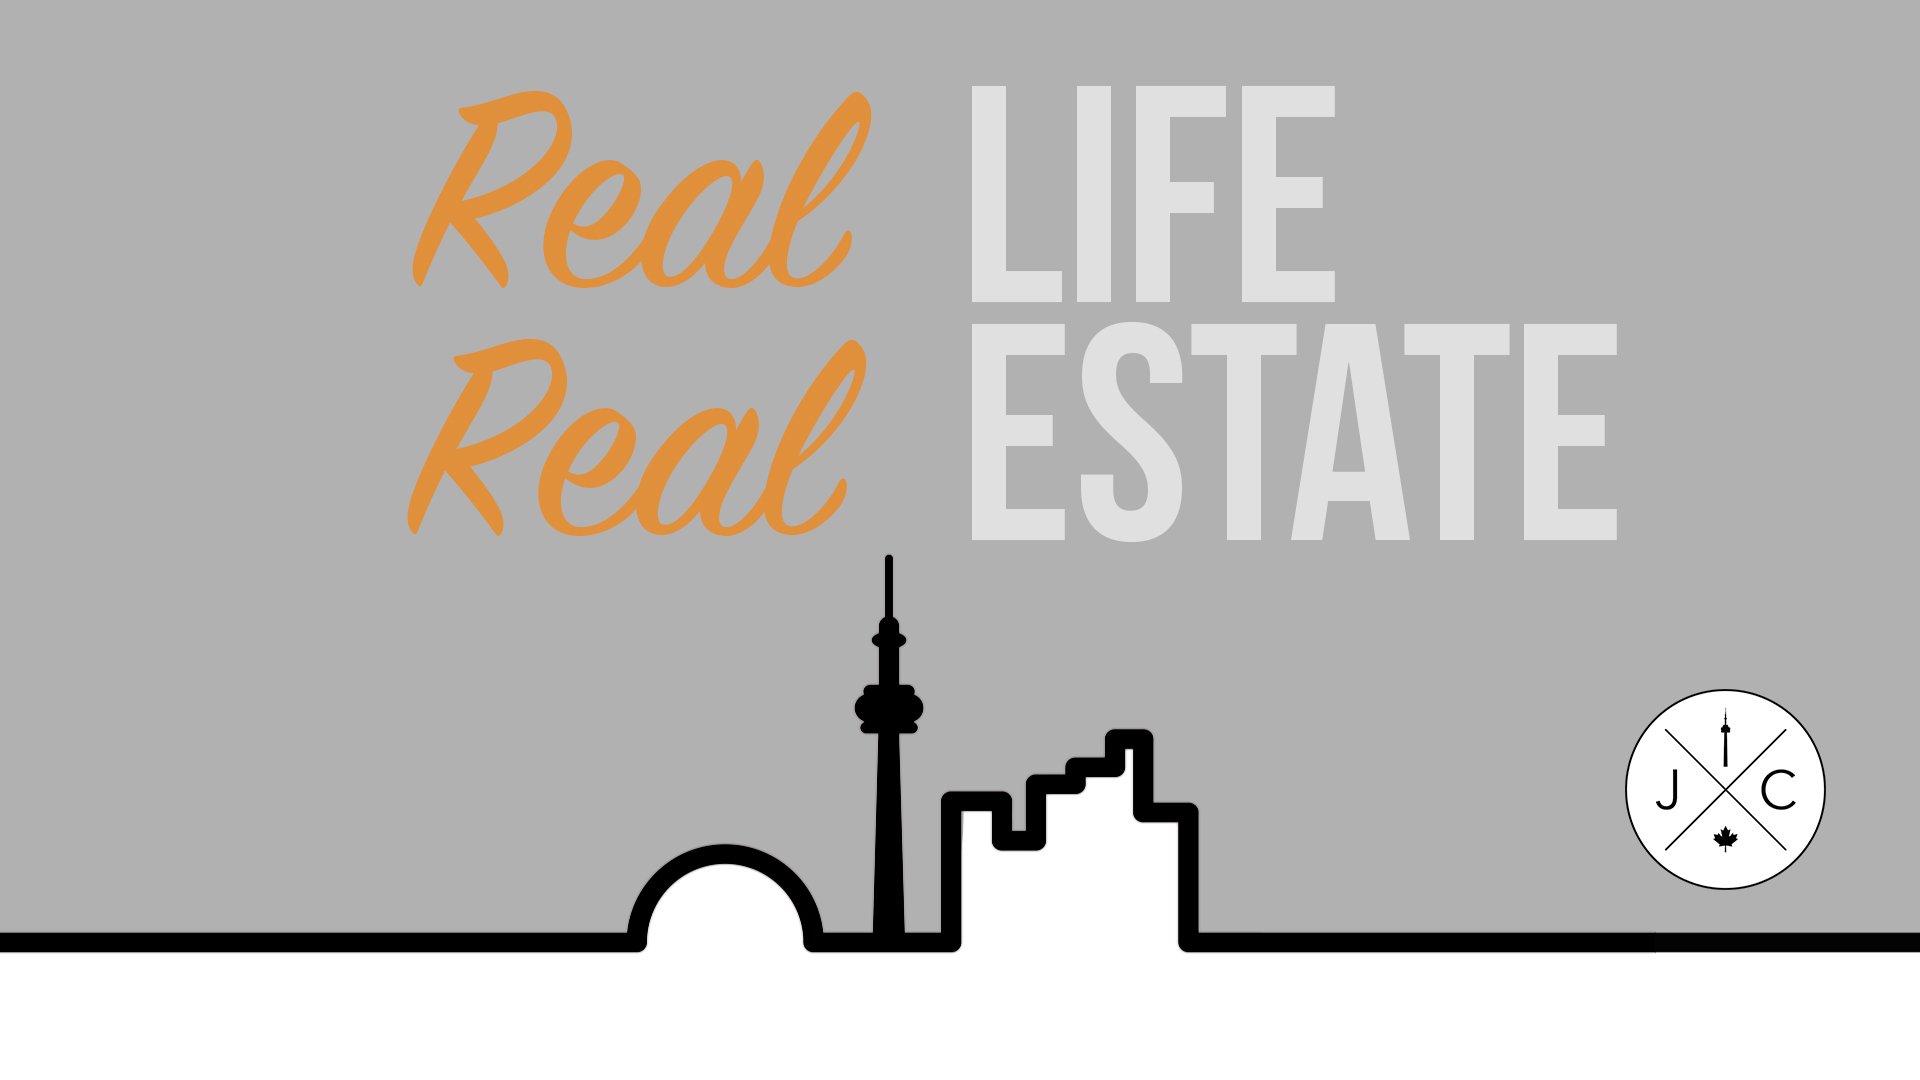 Real Life, Real Estate